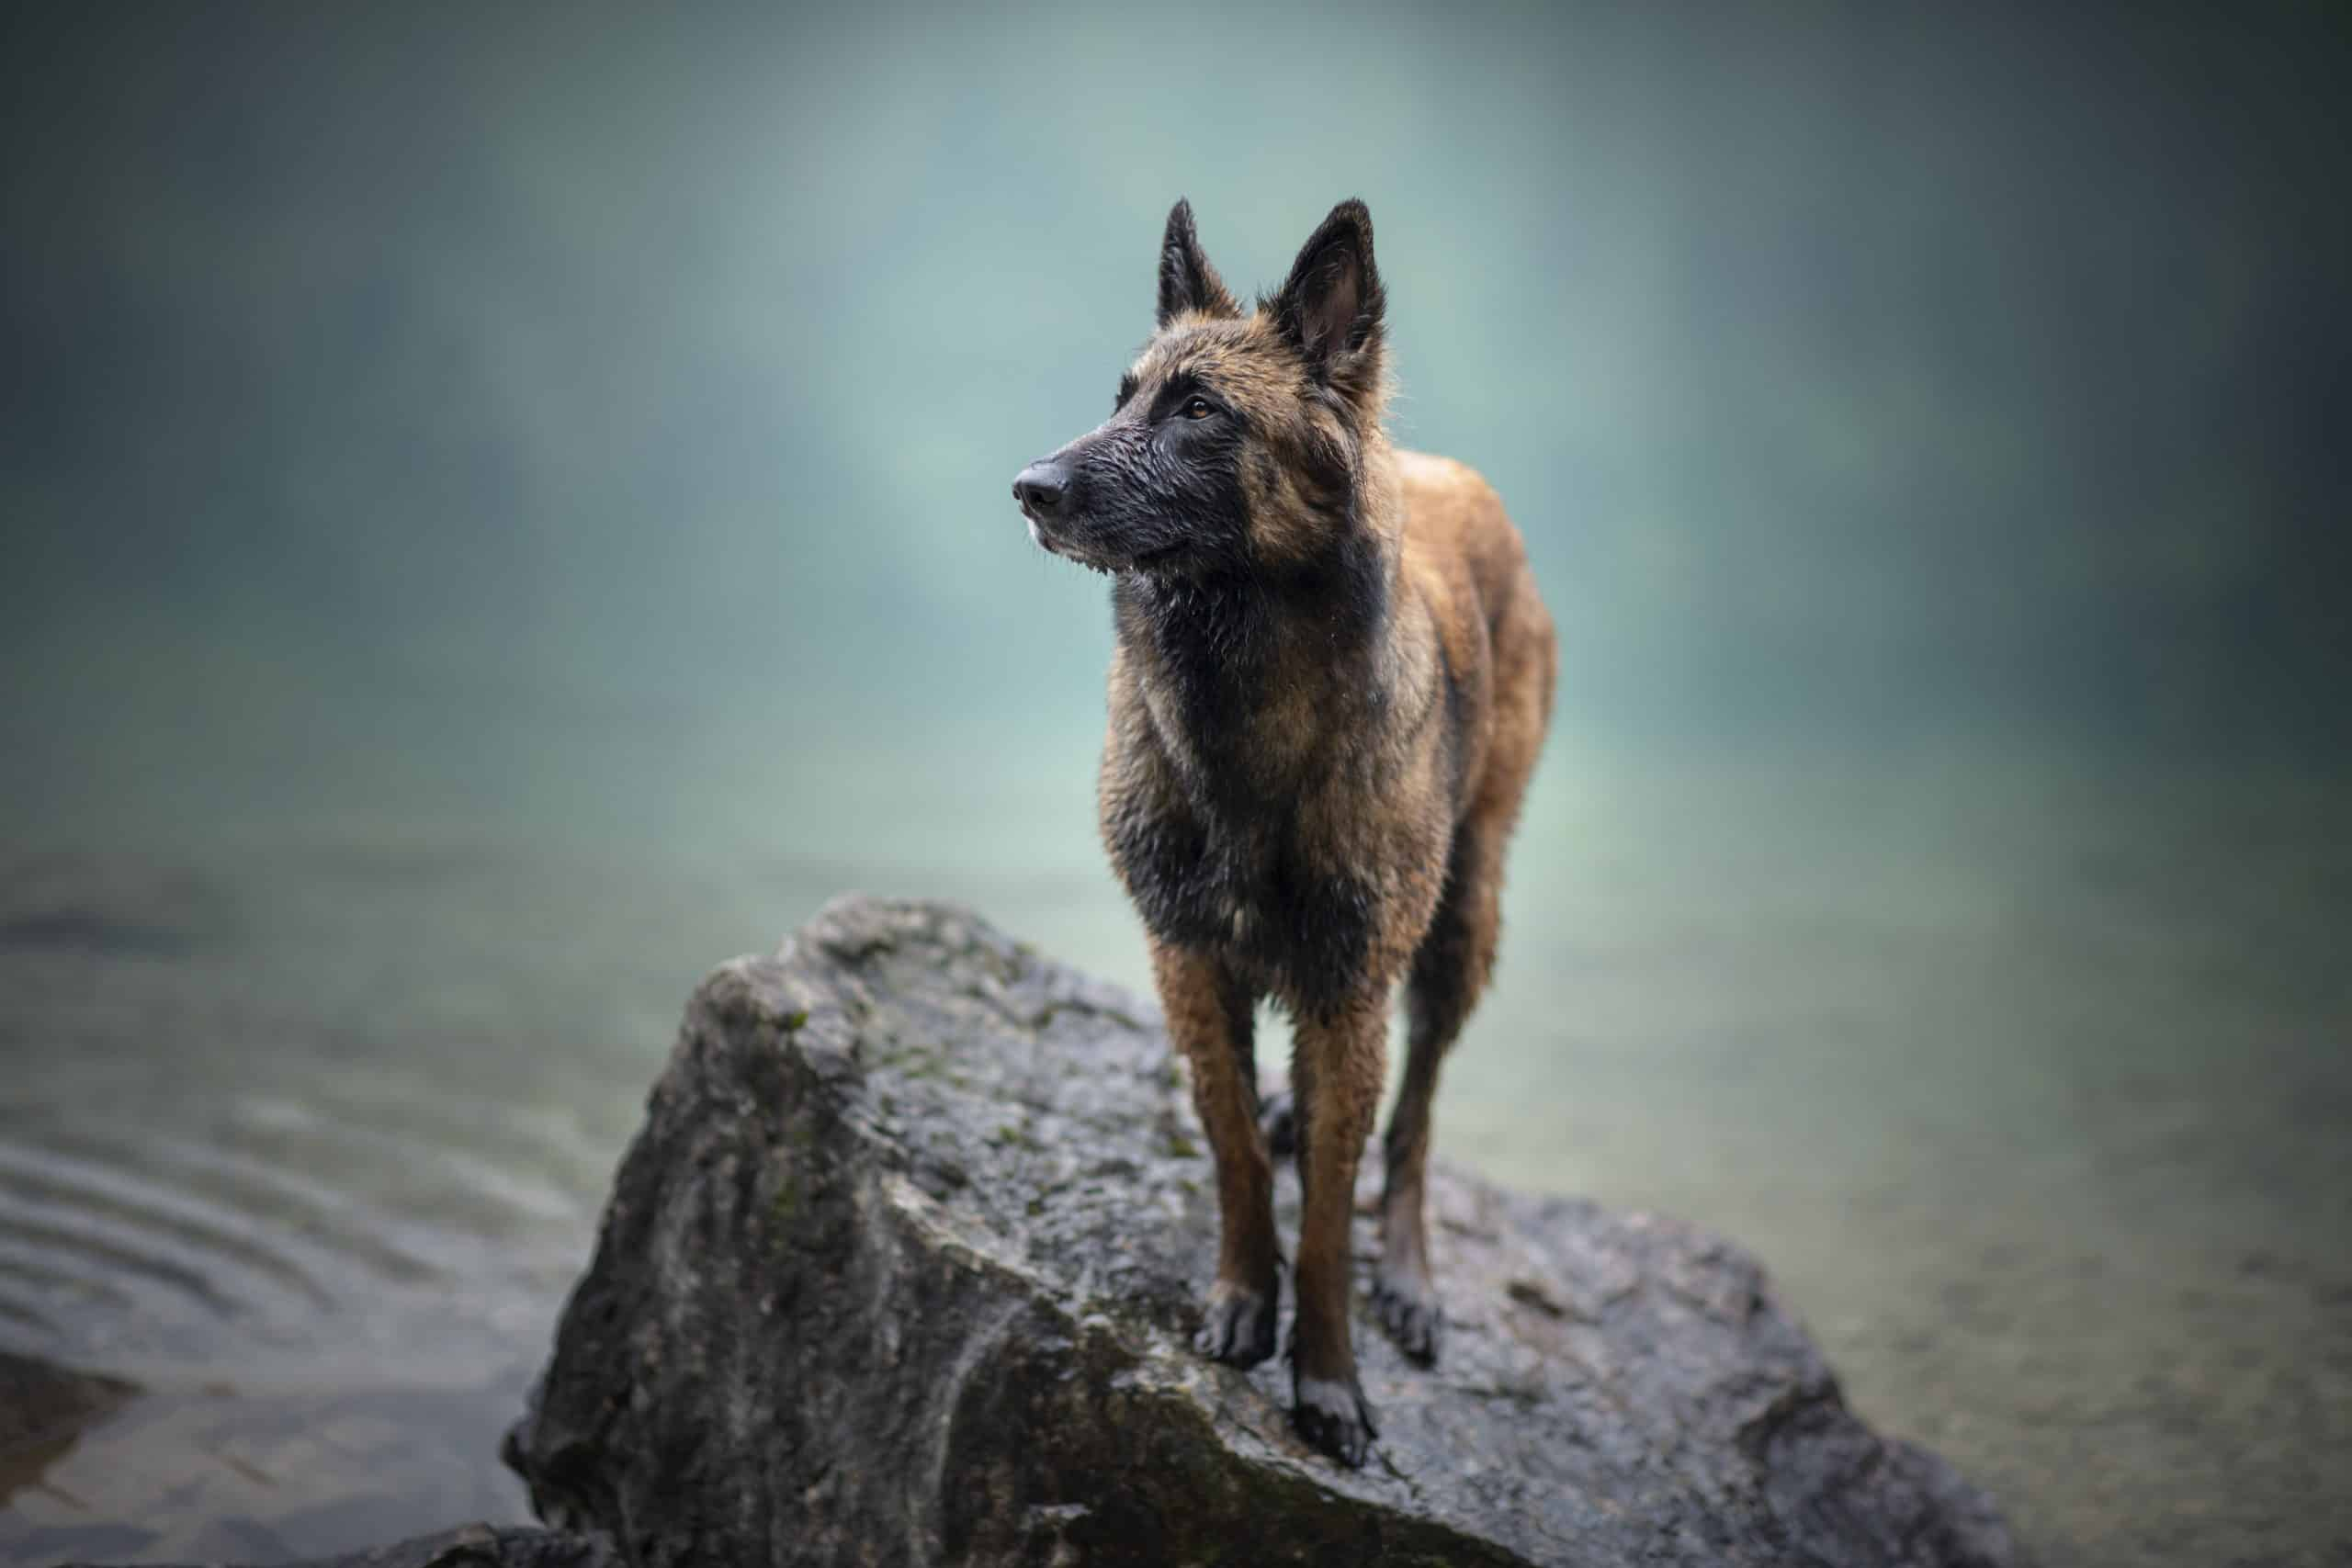 Is this a German Shepherd? Or a different breed entirely?